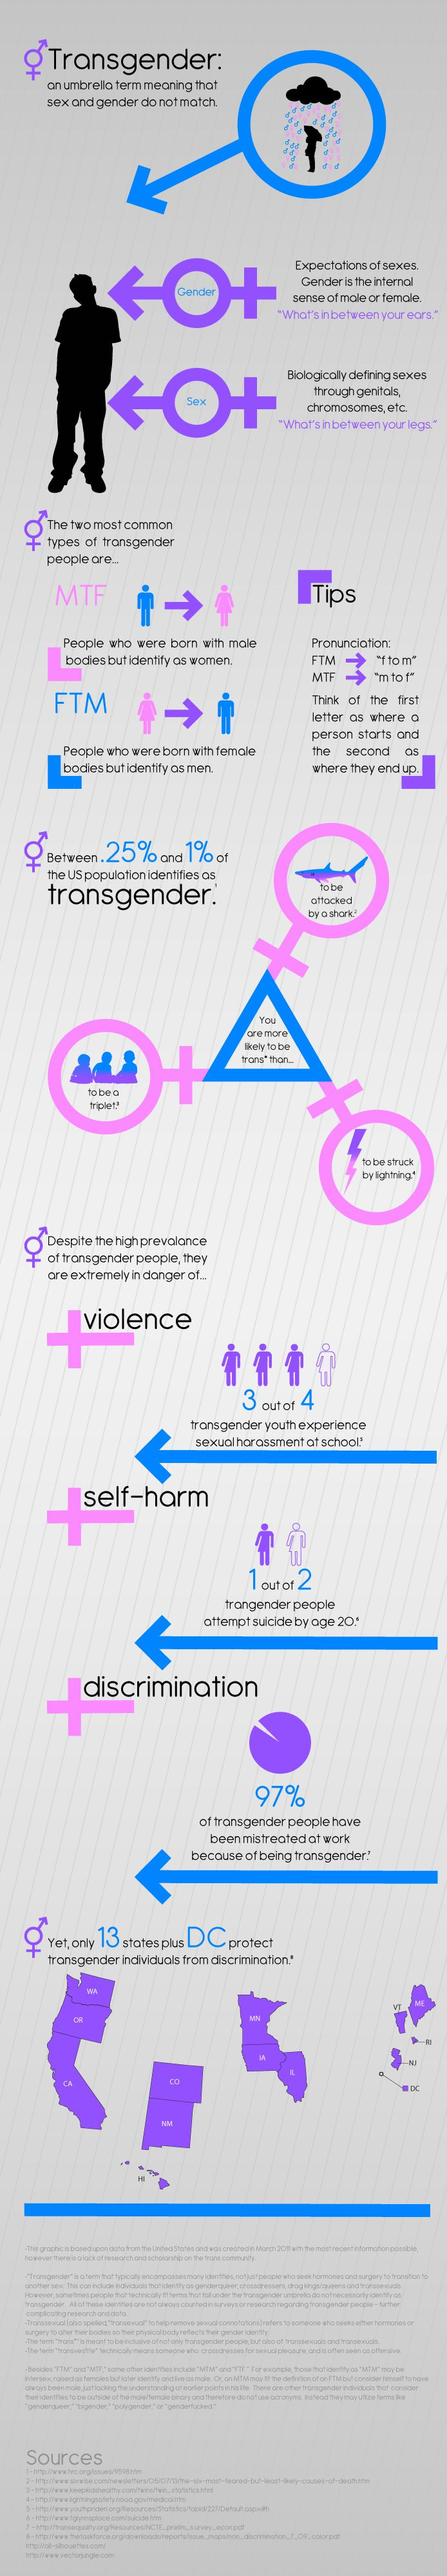 Finding pis like this are critical in helping people move past the stigma of being transgendered. Being able to see the statistics on suicide, as well as numbers and explanations of just what transgendered is, is needed to move to a place where being transgendered is understood and accepted by society.